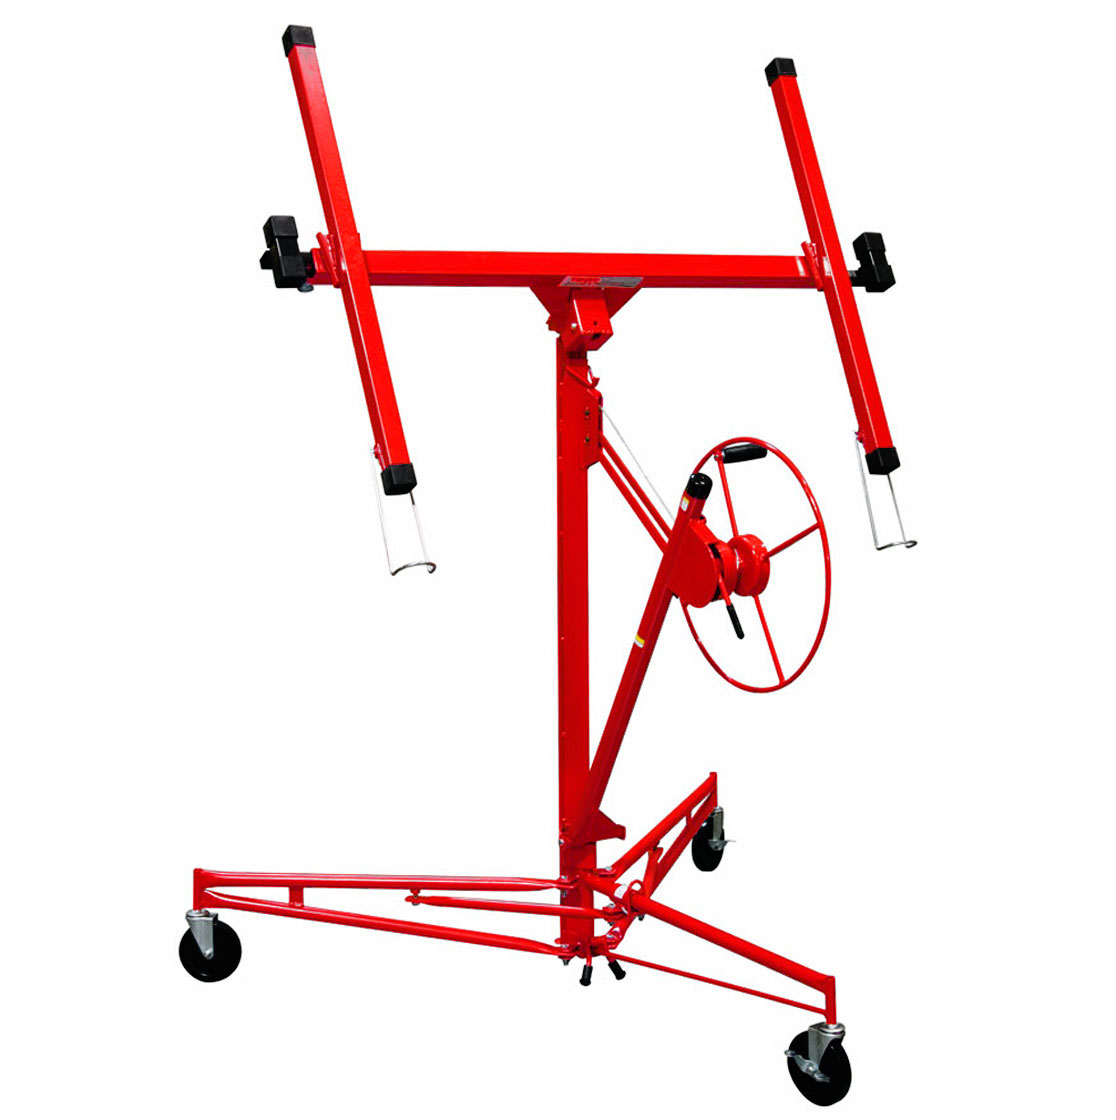 Troy DPH11 11' Drywall Rolling Lifter Panel Hoist Jack Lo...